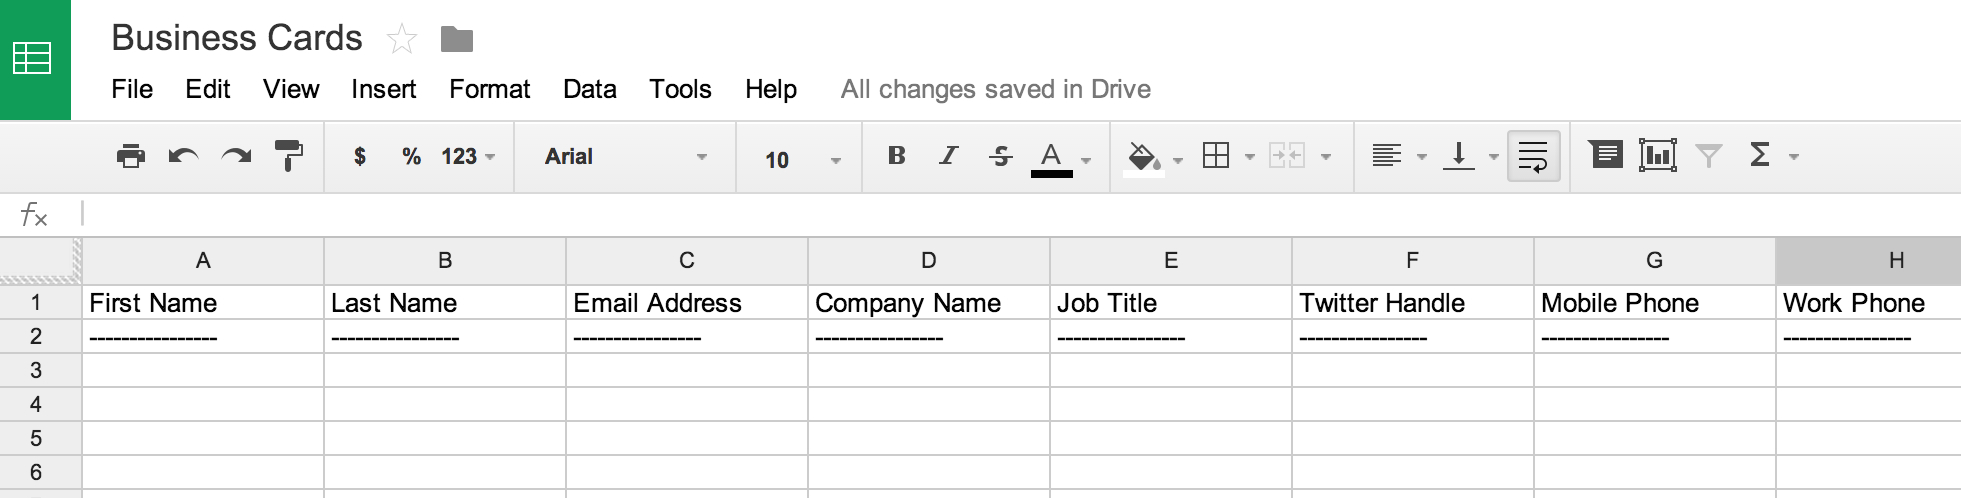 Business Card Template Spreadsheet Excel Throughout How To Scan Business Cards Into A Spreadsheet